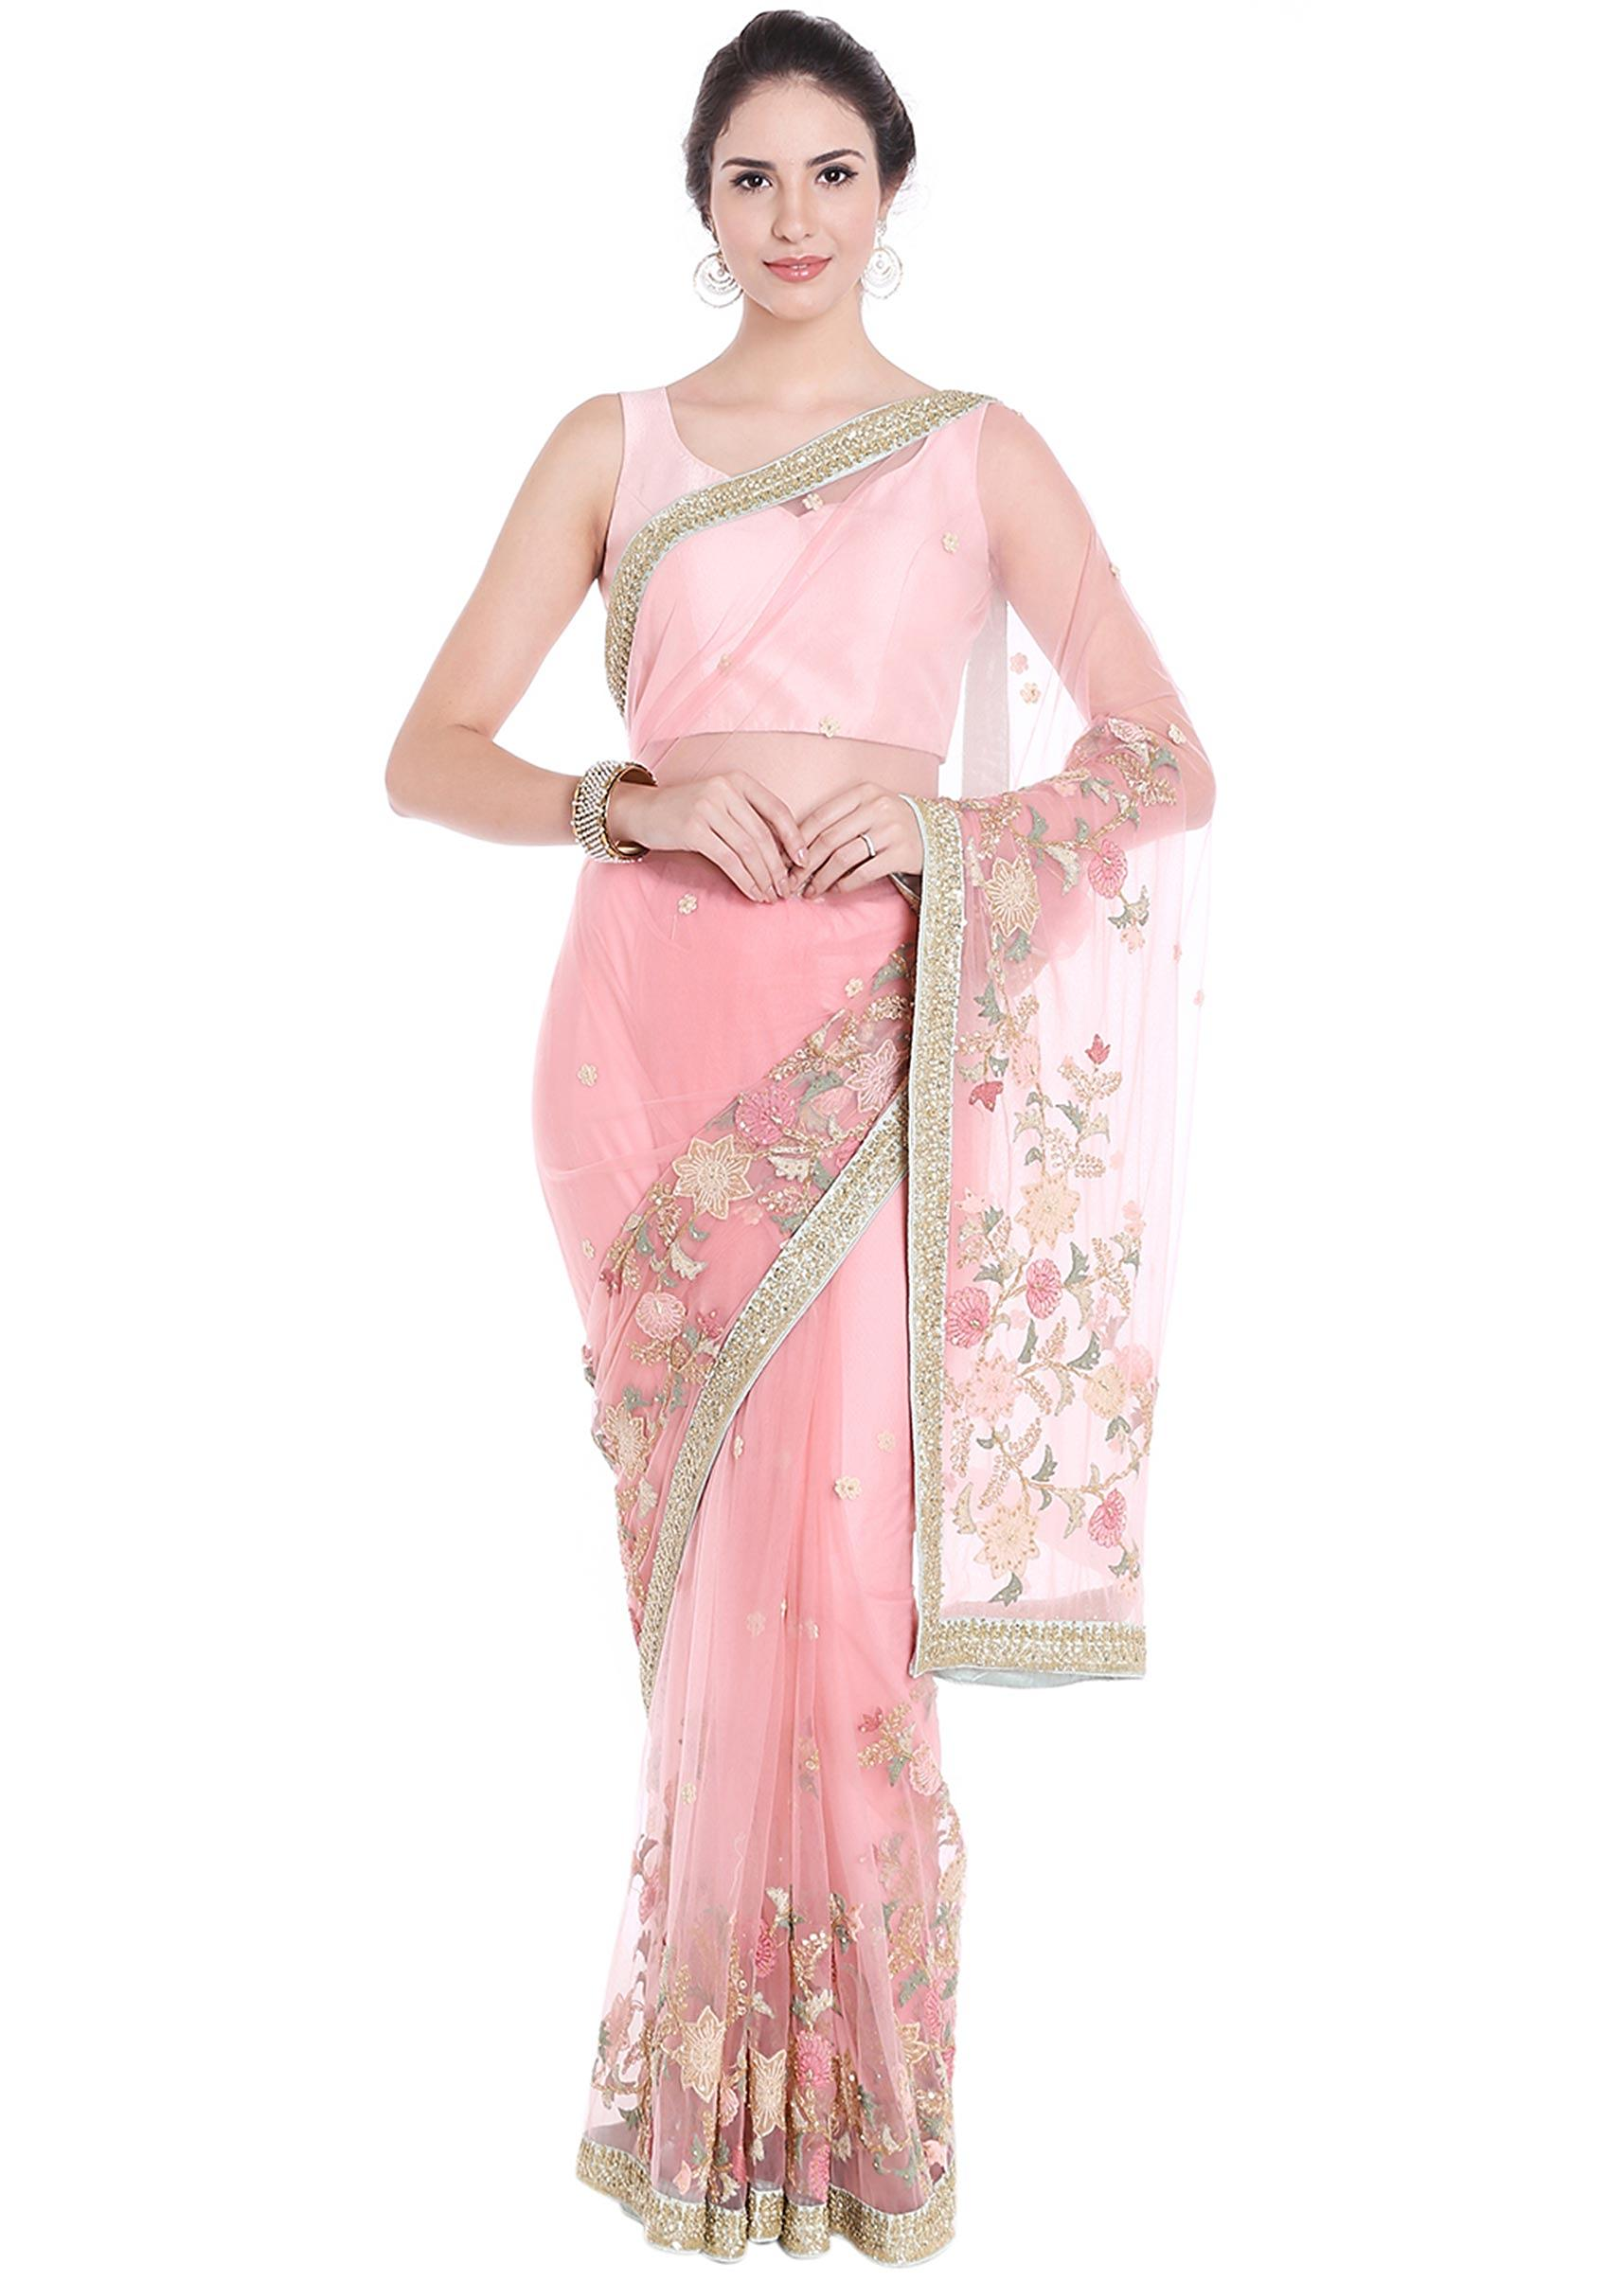 f8c1dd29eeefe Baby pink net saree adorn in thread floral jaal motif all over only on Kalki